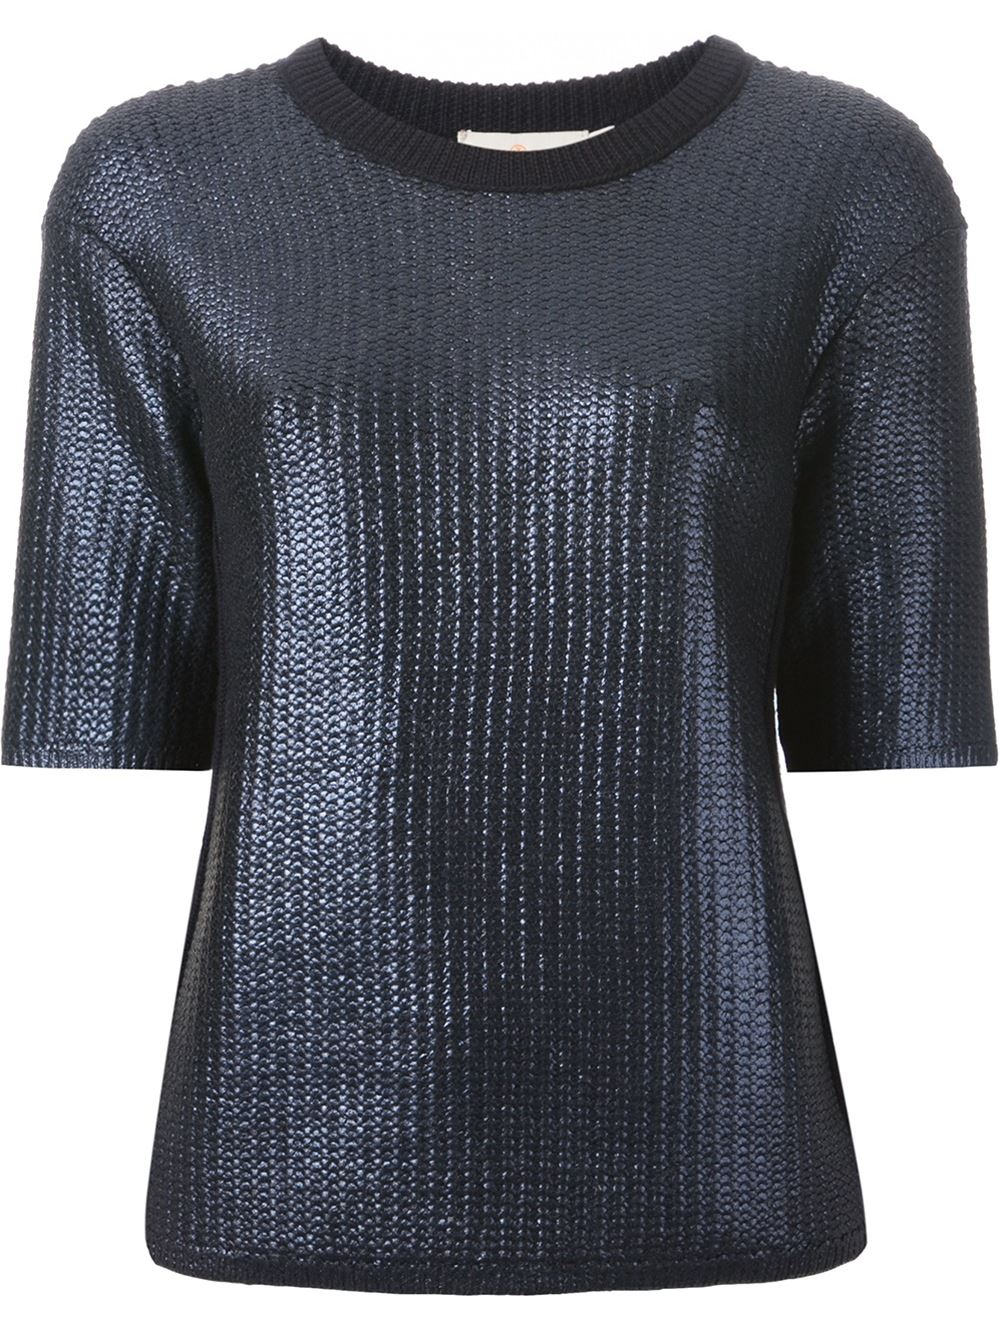 Tory burch chunky knit shortsleeved sweater